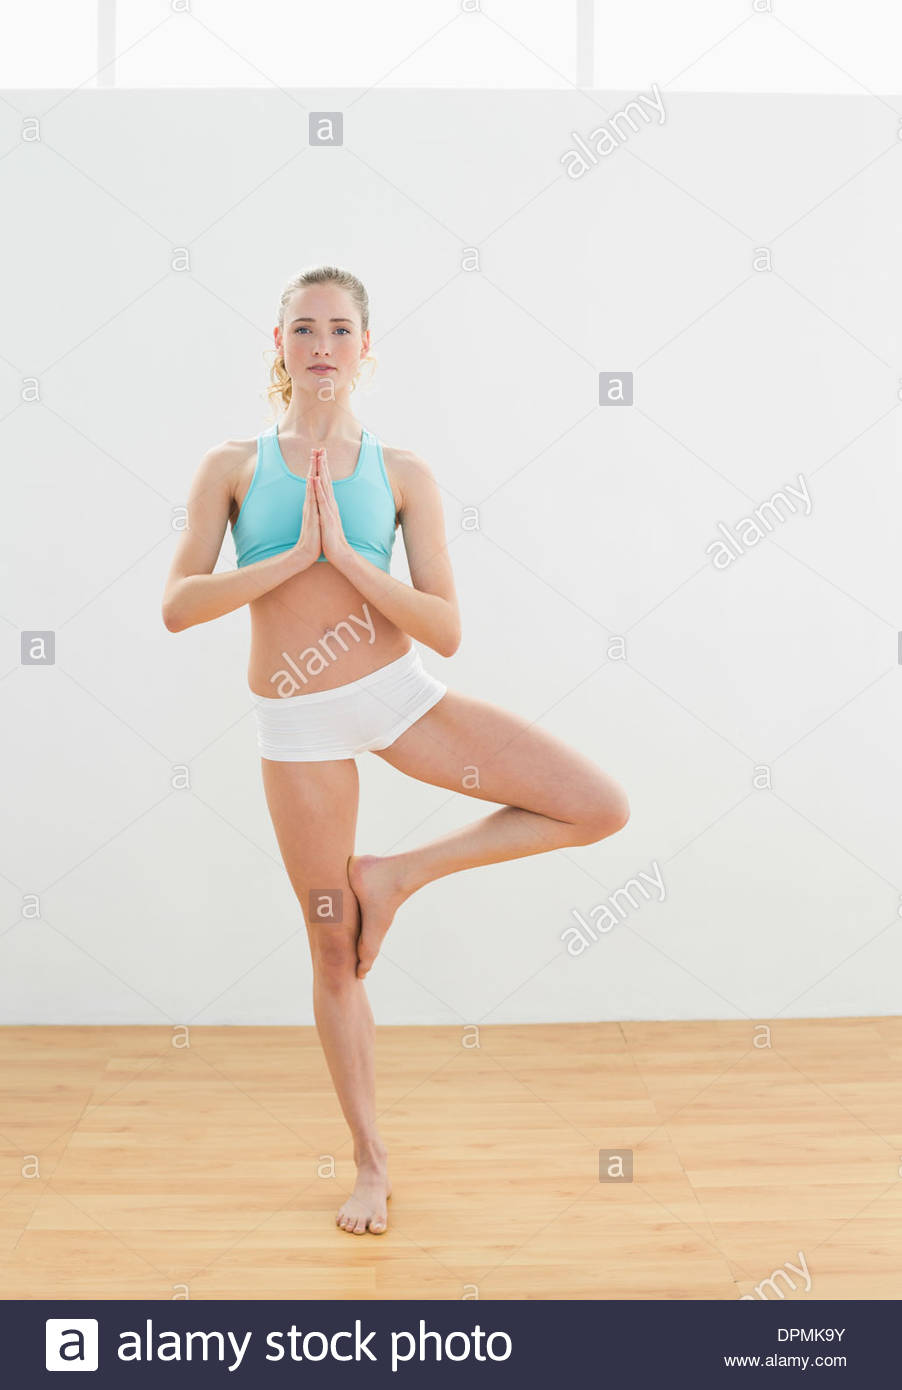 Calm slim blonde standing in eagle pose - Stock Image